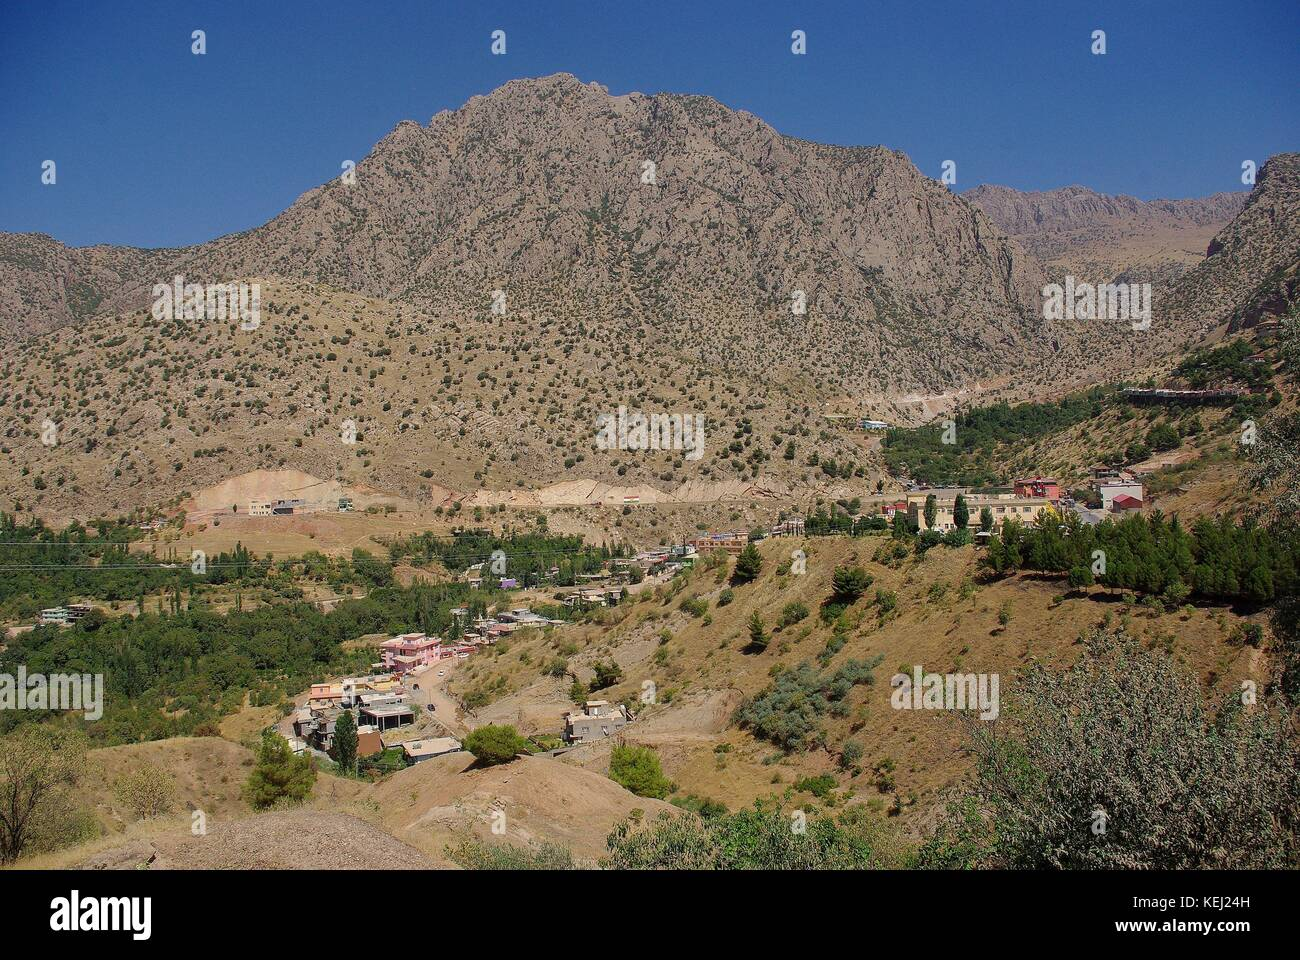 the Landscape around Amedi (Amediyah) in Iraq - Kurdistan - Stock Image